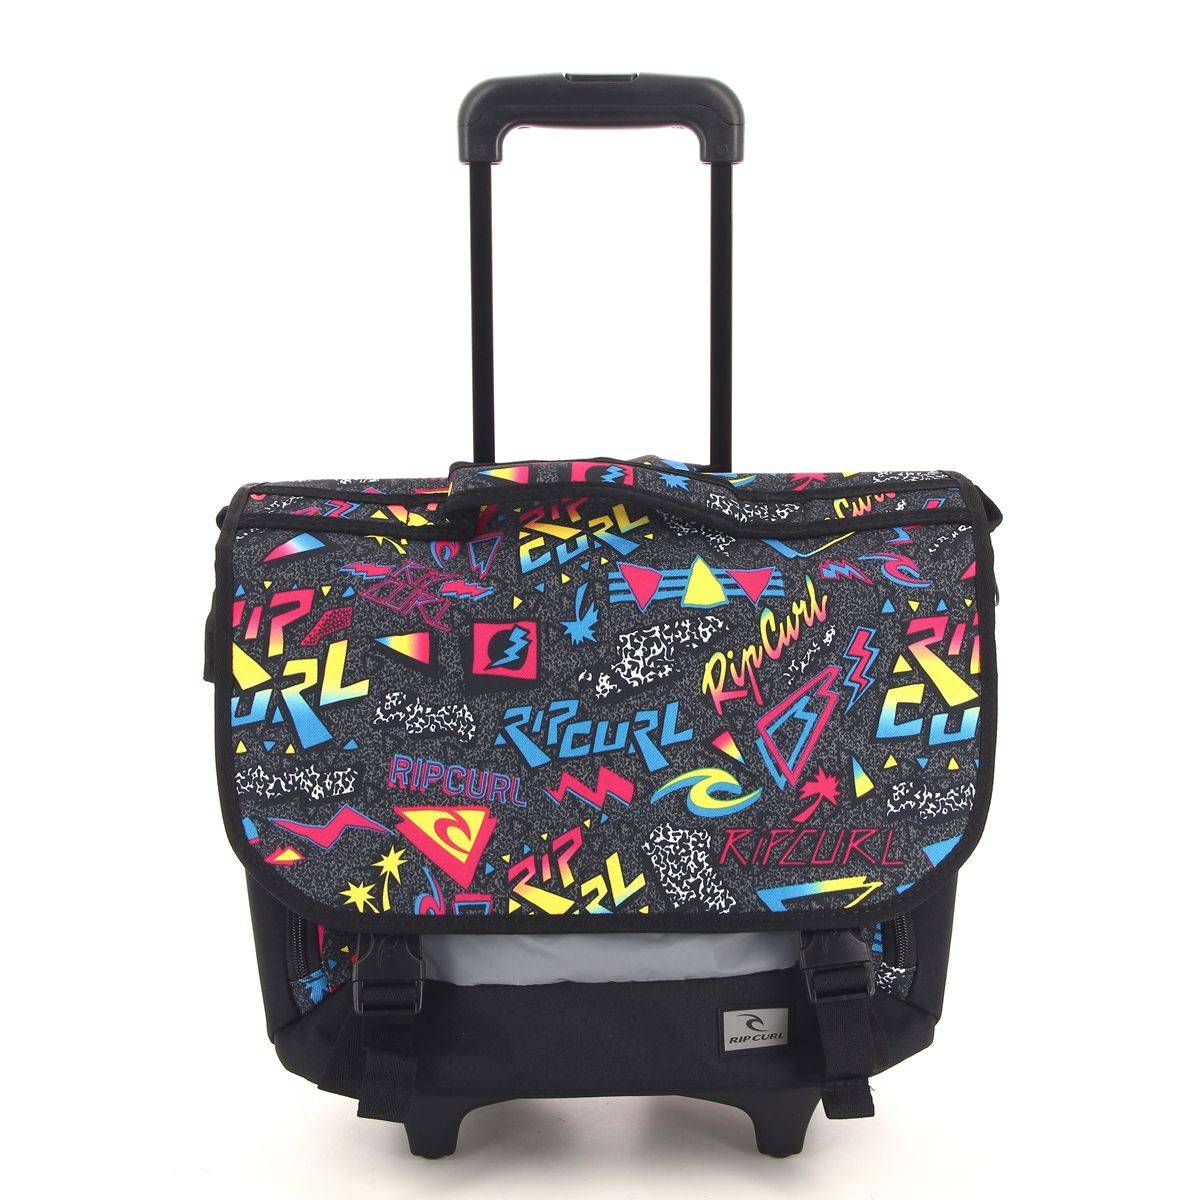 rip curl cartable roulettes gar on neon vibes wh cartable bbpfg4. Black Bedroom Furniture Sets. Home Design Ideas